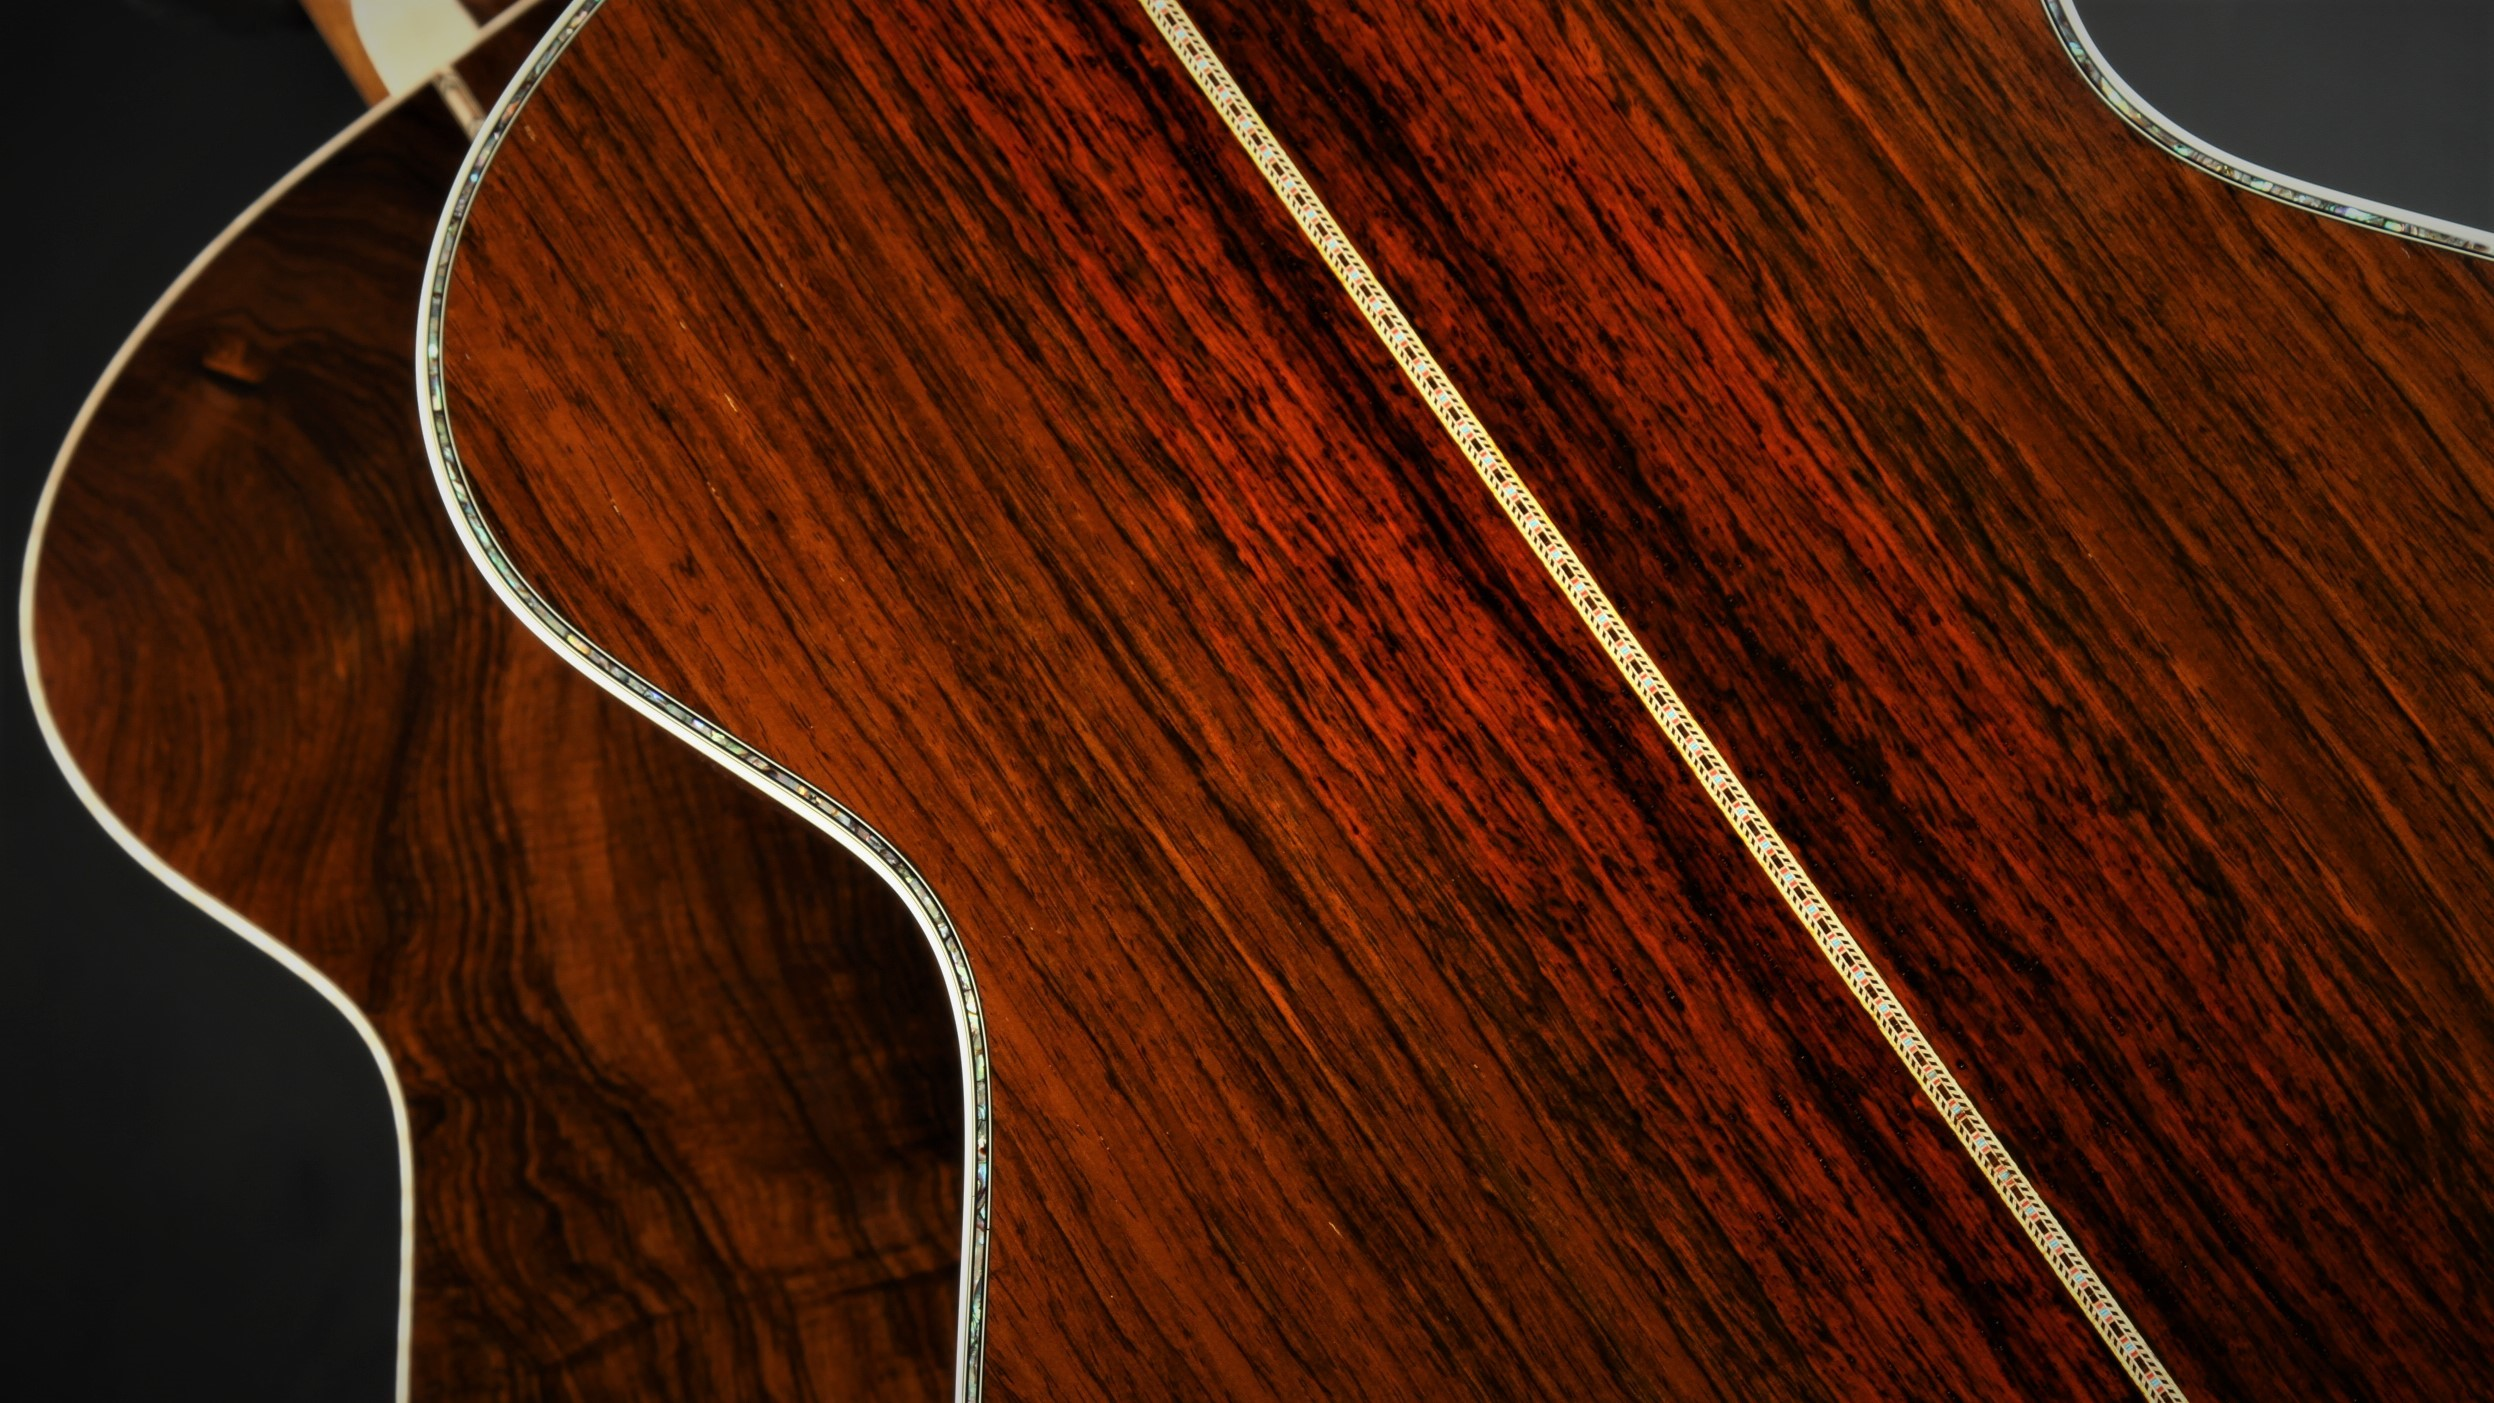 Brazilian Rosewood Acoustic Guitars